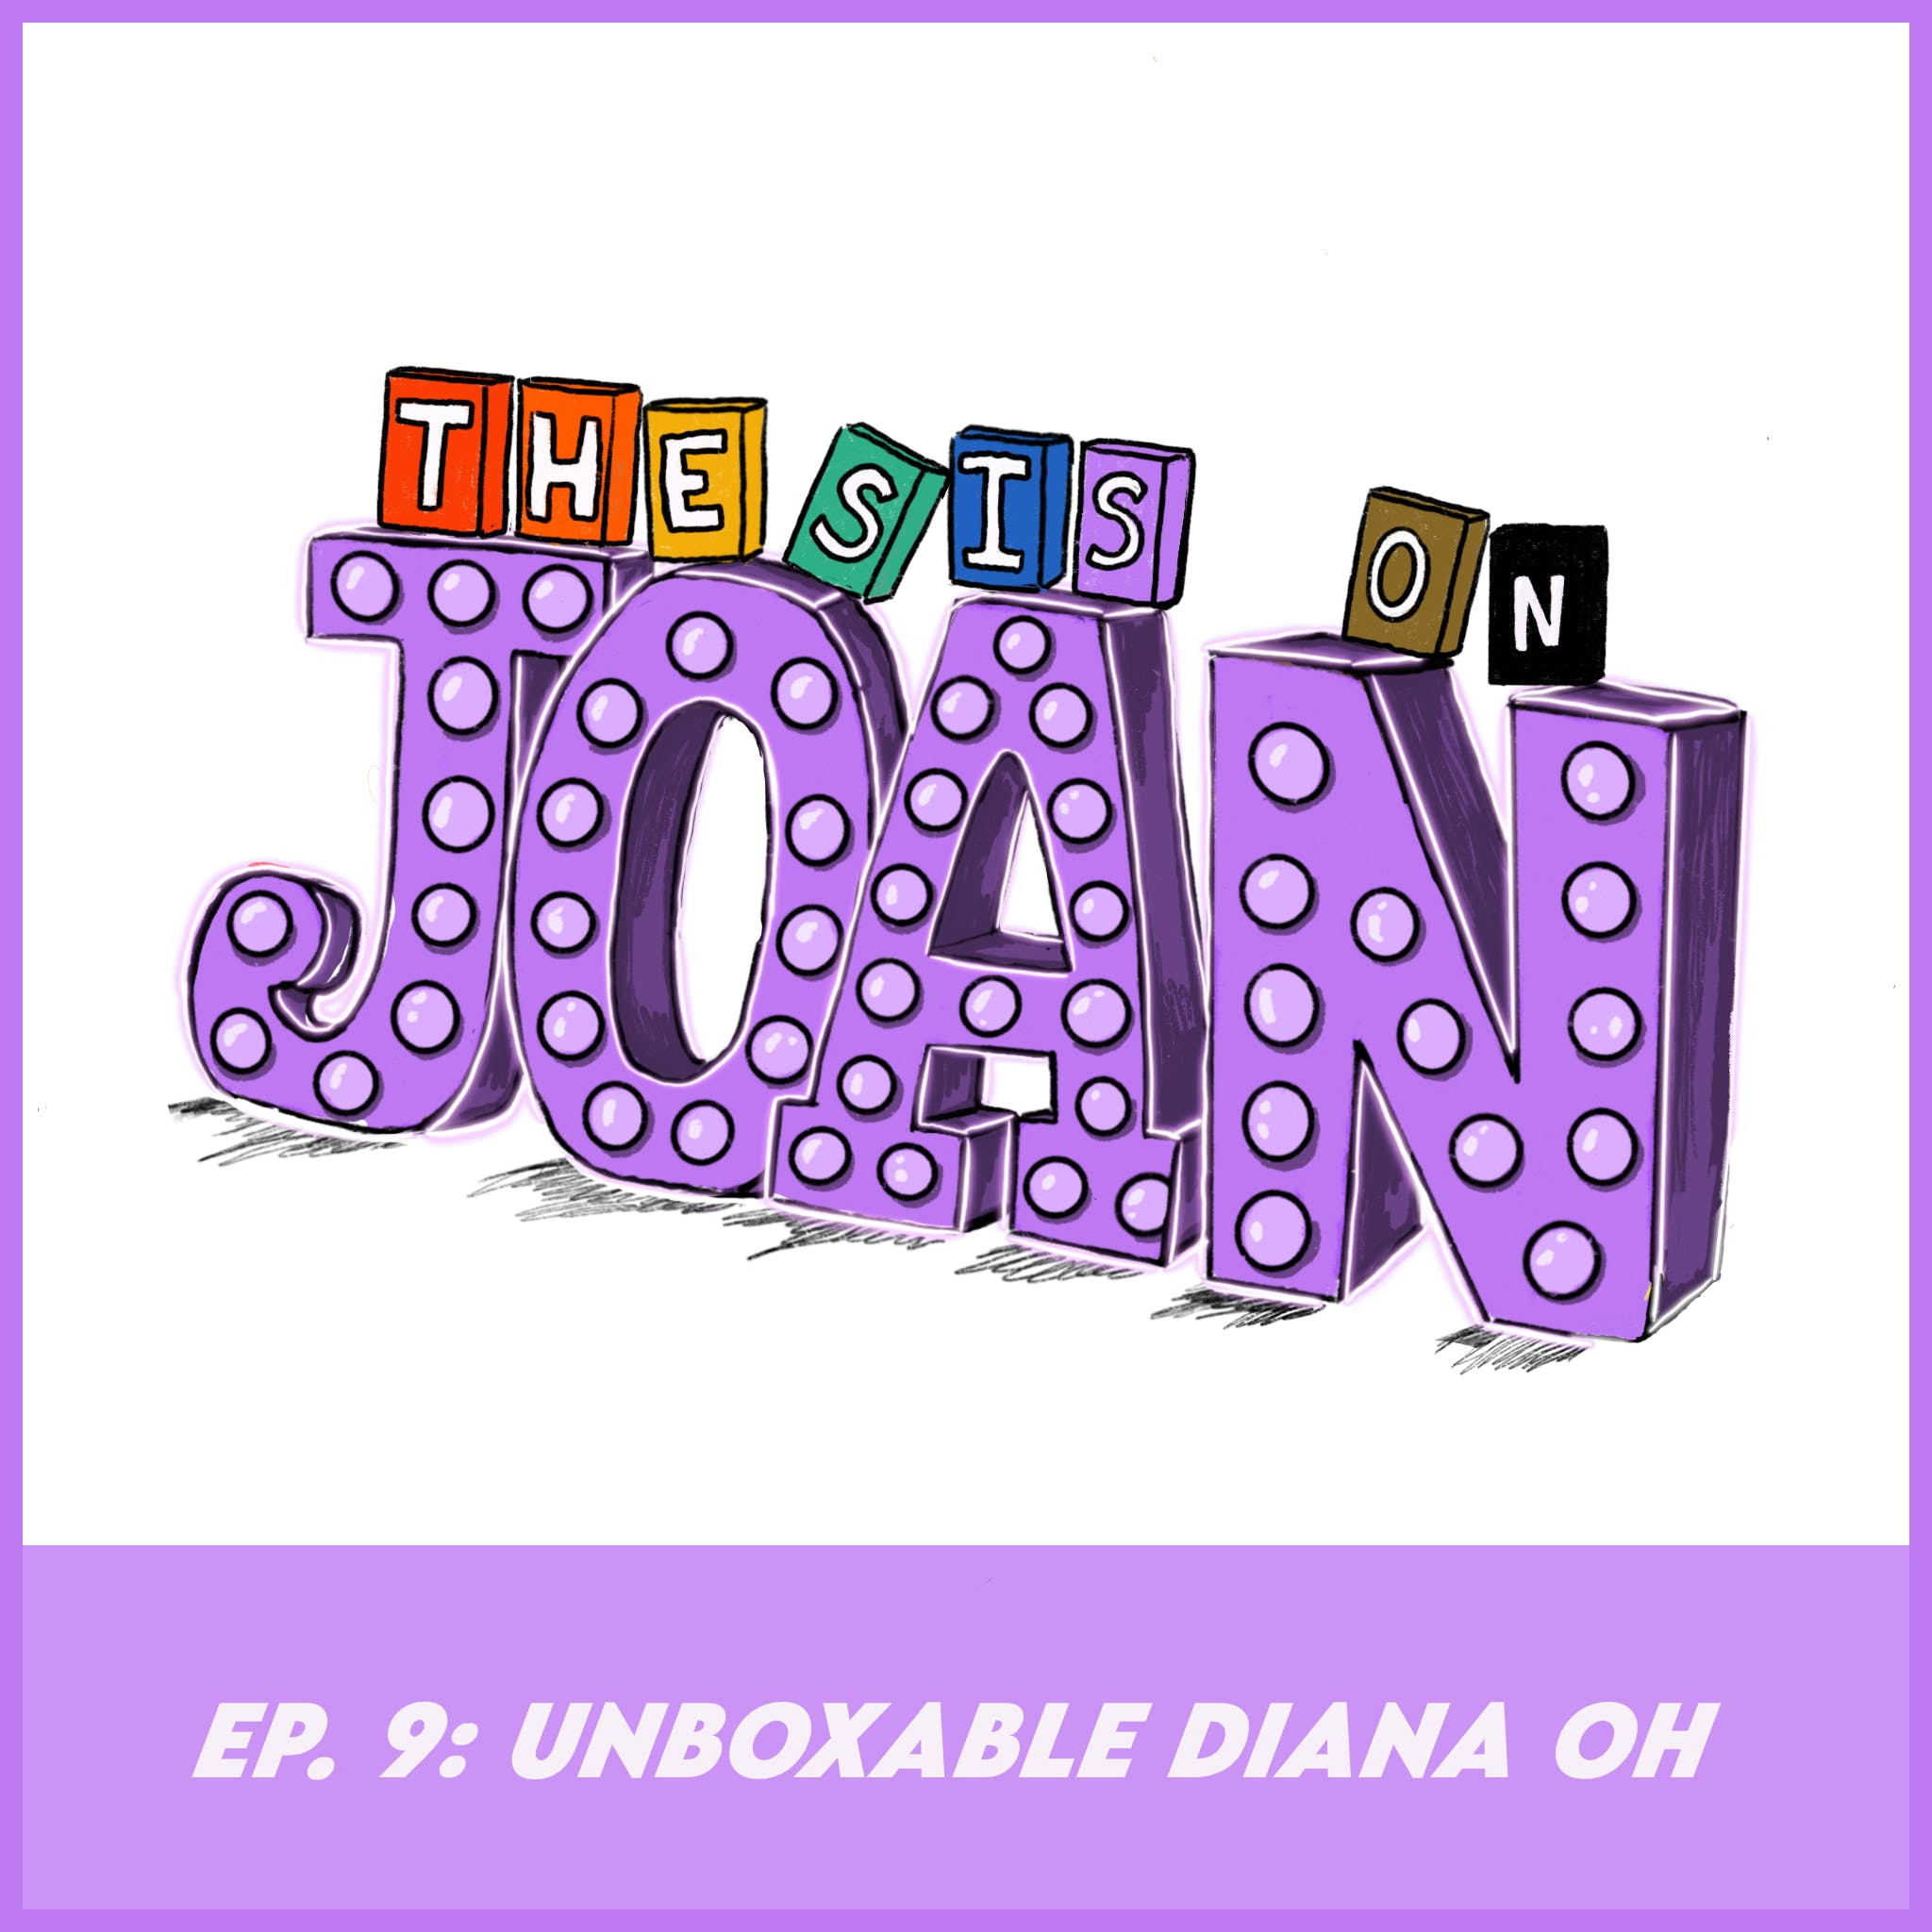 #9 Unboxable Diana Oh